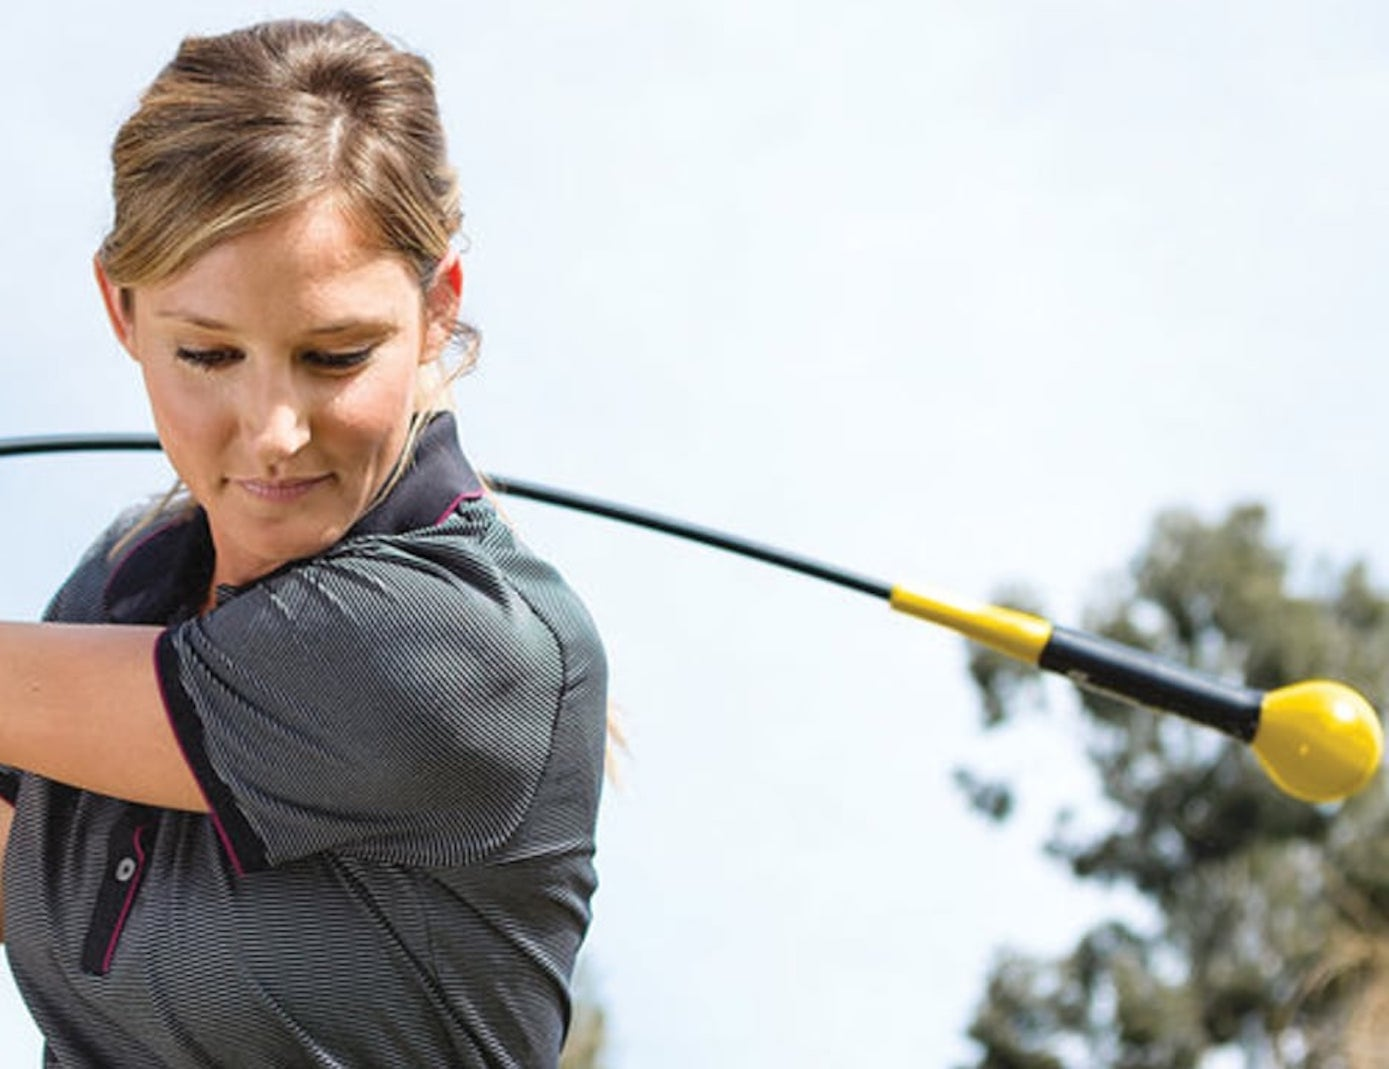 SKLZ Gold Flex Training Golf Club is here to help you develop your swinging mechanics